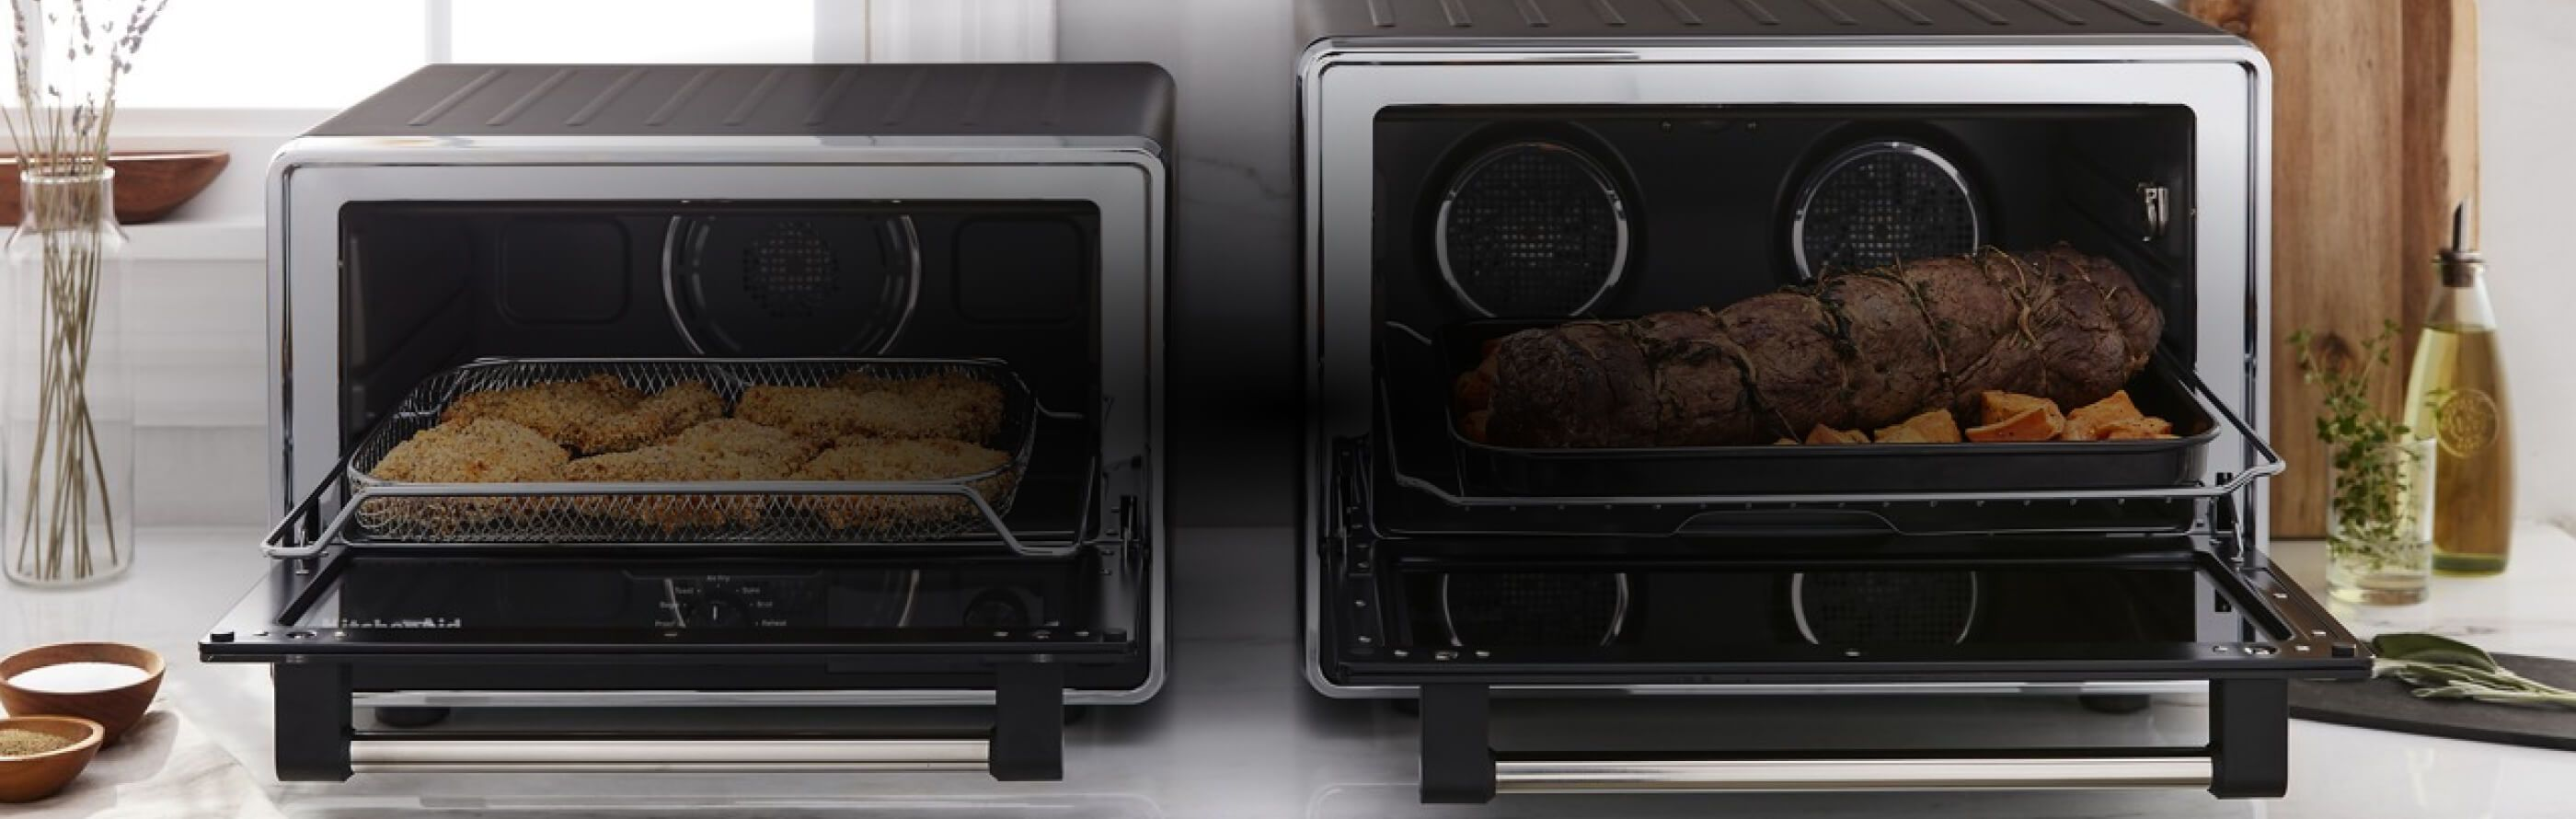 Two KitchenAid® Countertop Ovens resting on a kitchen counter.